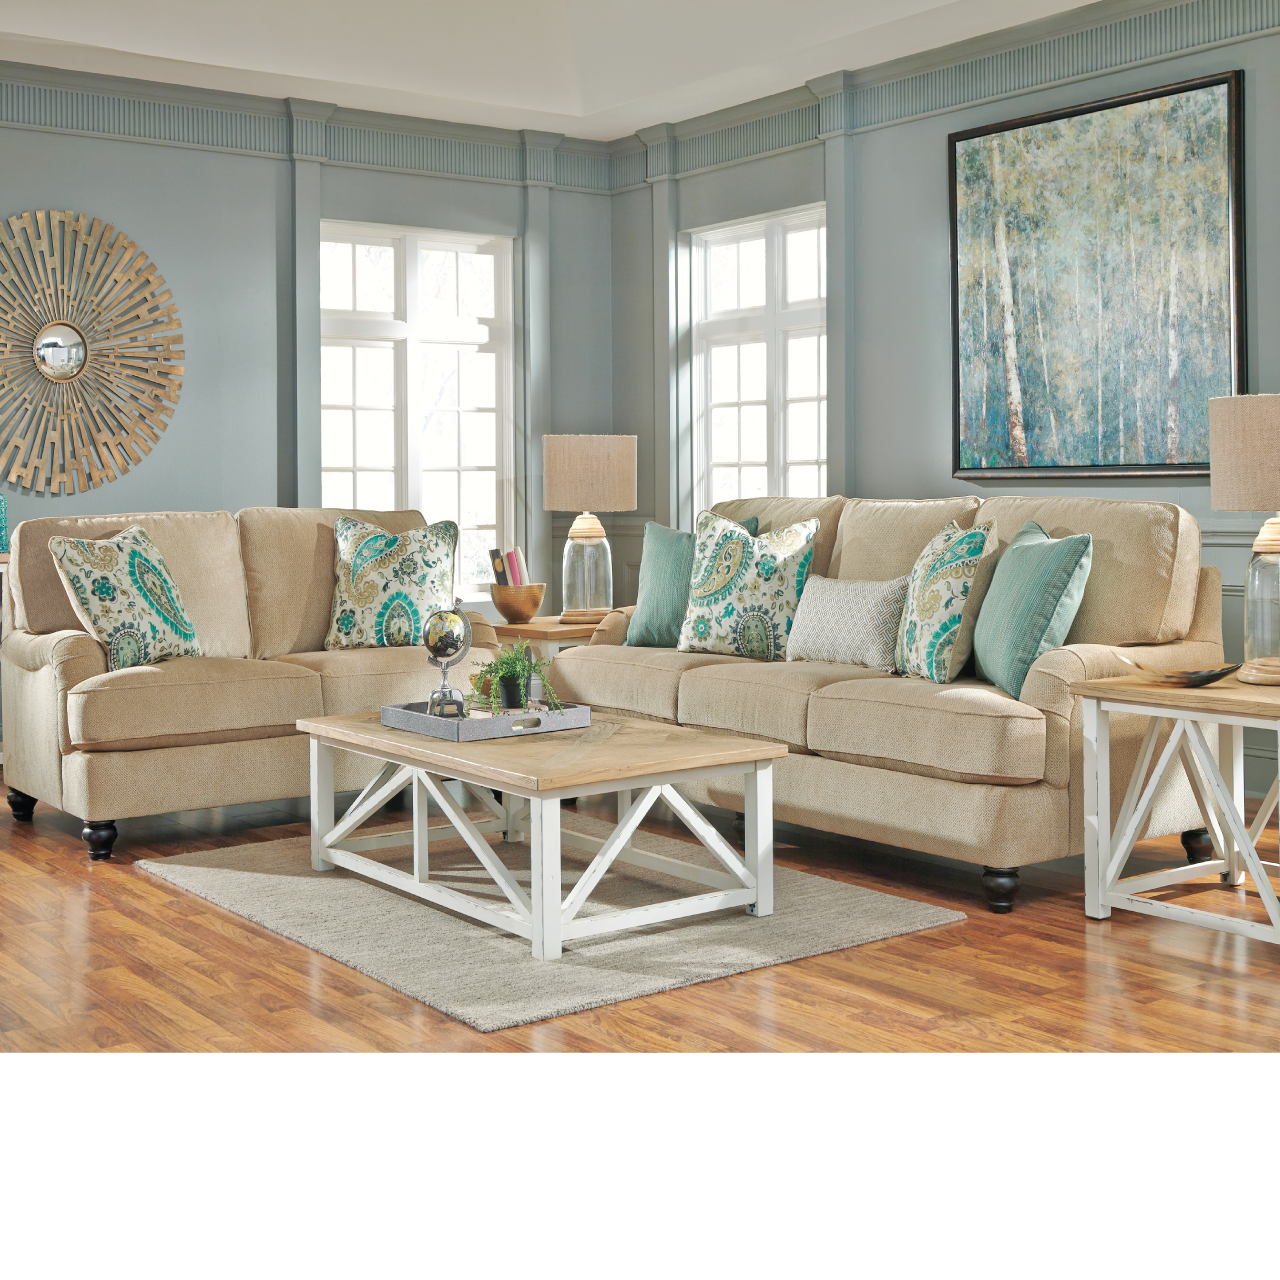 Coastal living room ideas lochian sofa by ashley Ashley furniture living room design